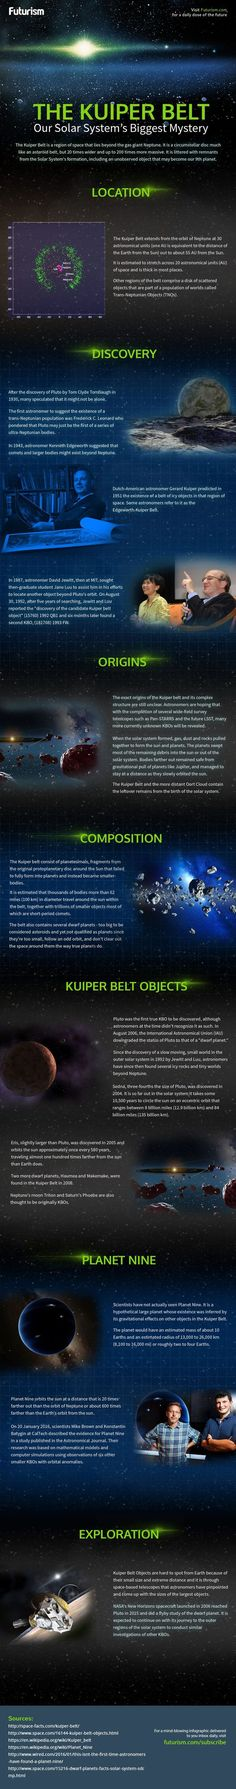 Meet the Kuiper Belt: One of Our Solar System's Biggest Mysteries